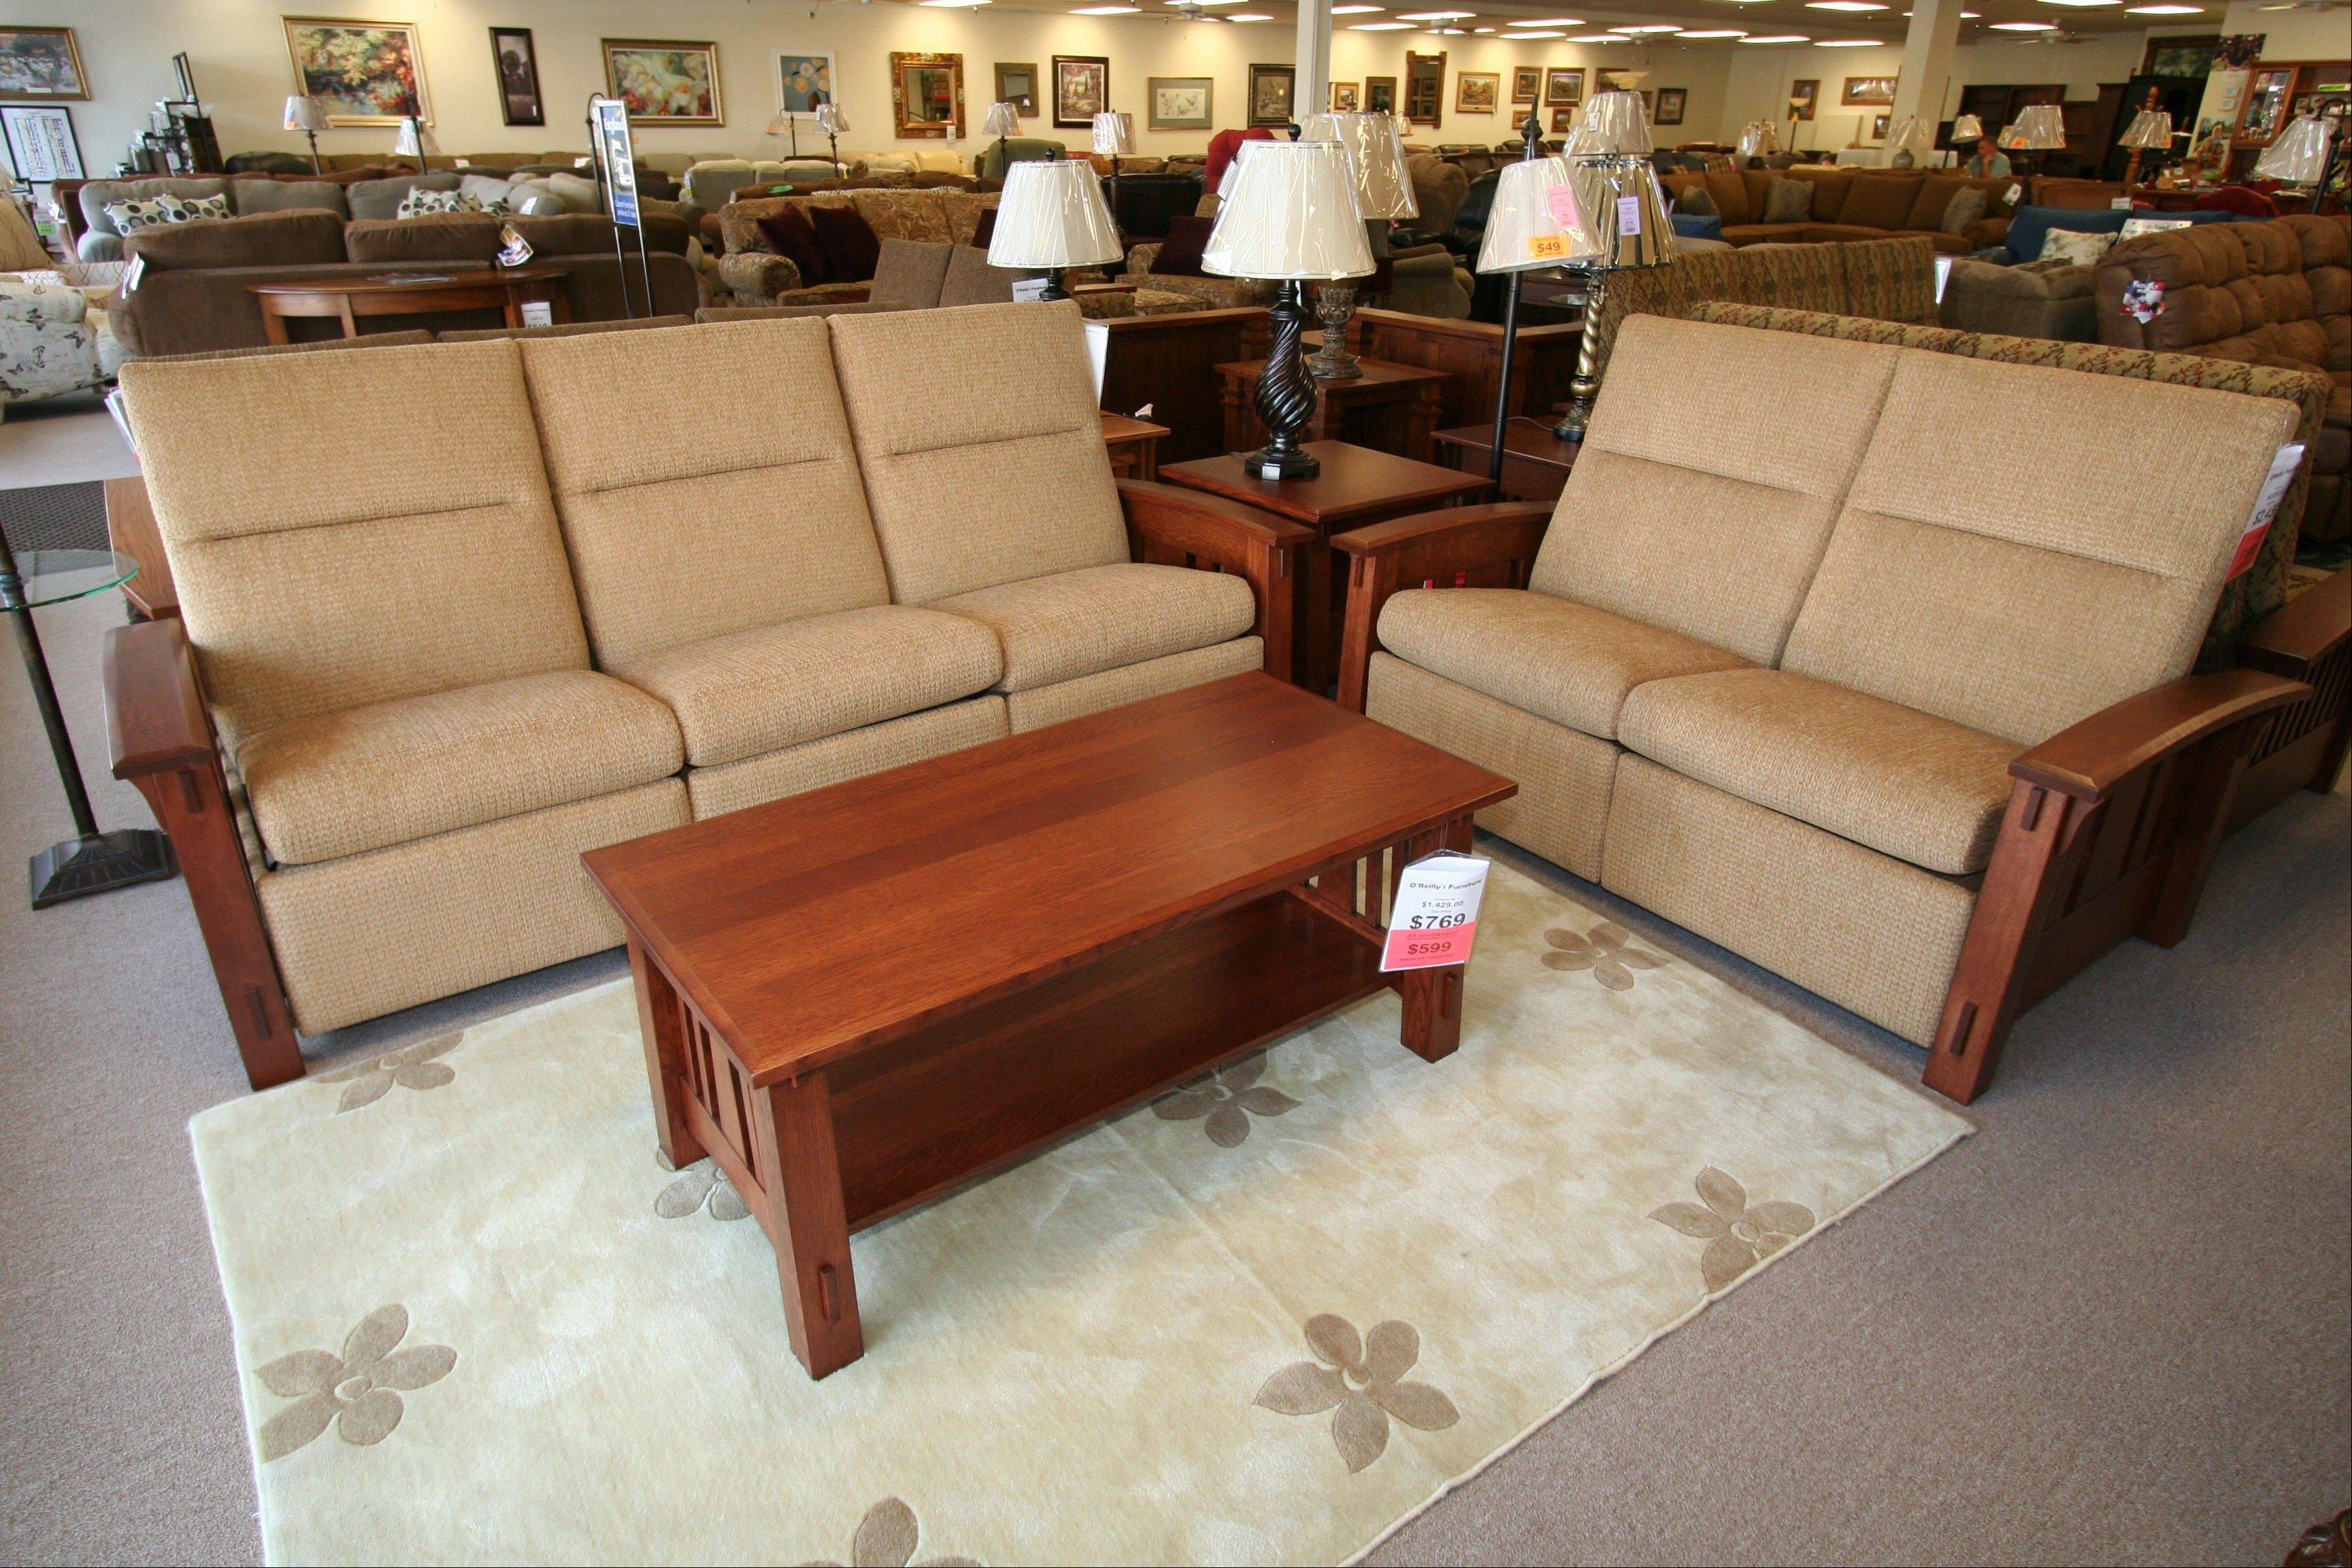 This summer O'Reilly's Furniture opened a new store and showroom in Libertyville.